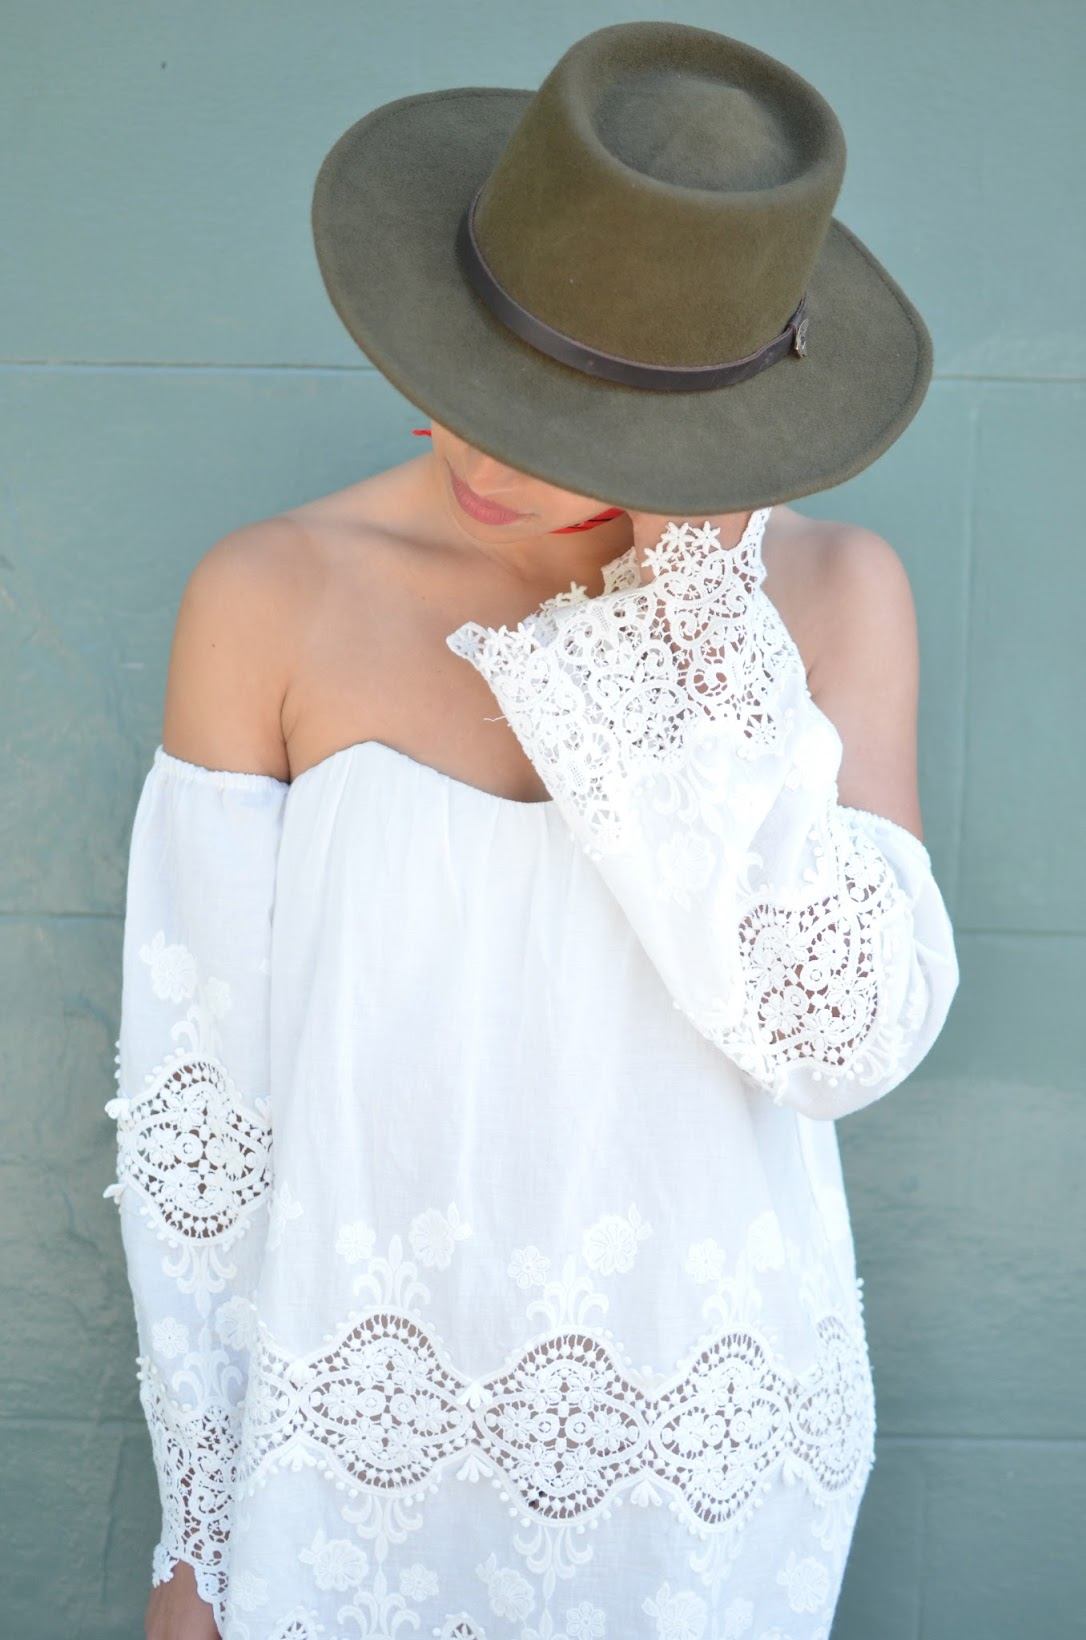 Goorin Bros fedora, Grenadier hat, Bordello hat, Gaucho hat, off the shoulder Stone Cold Fox dress, Stone Cold Fox, white dress, LWD, little white dress, gladiator sandals, SF summer style